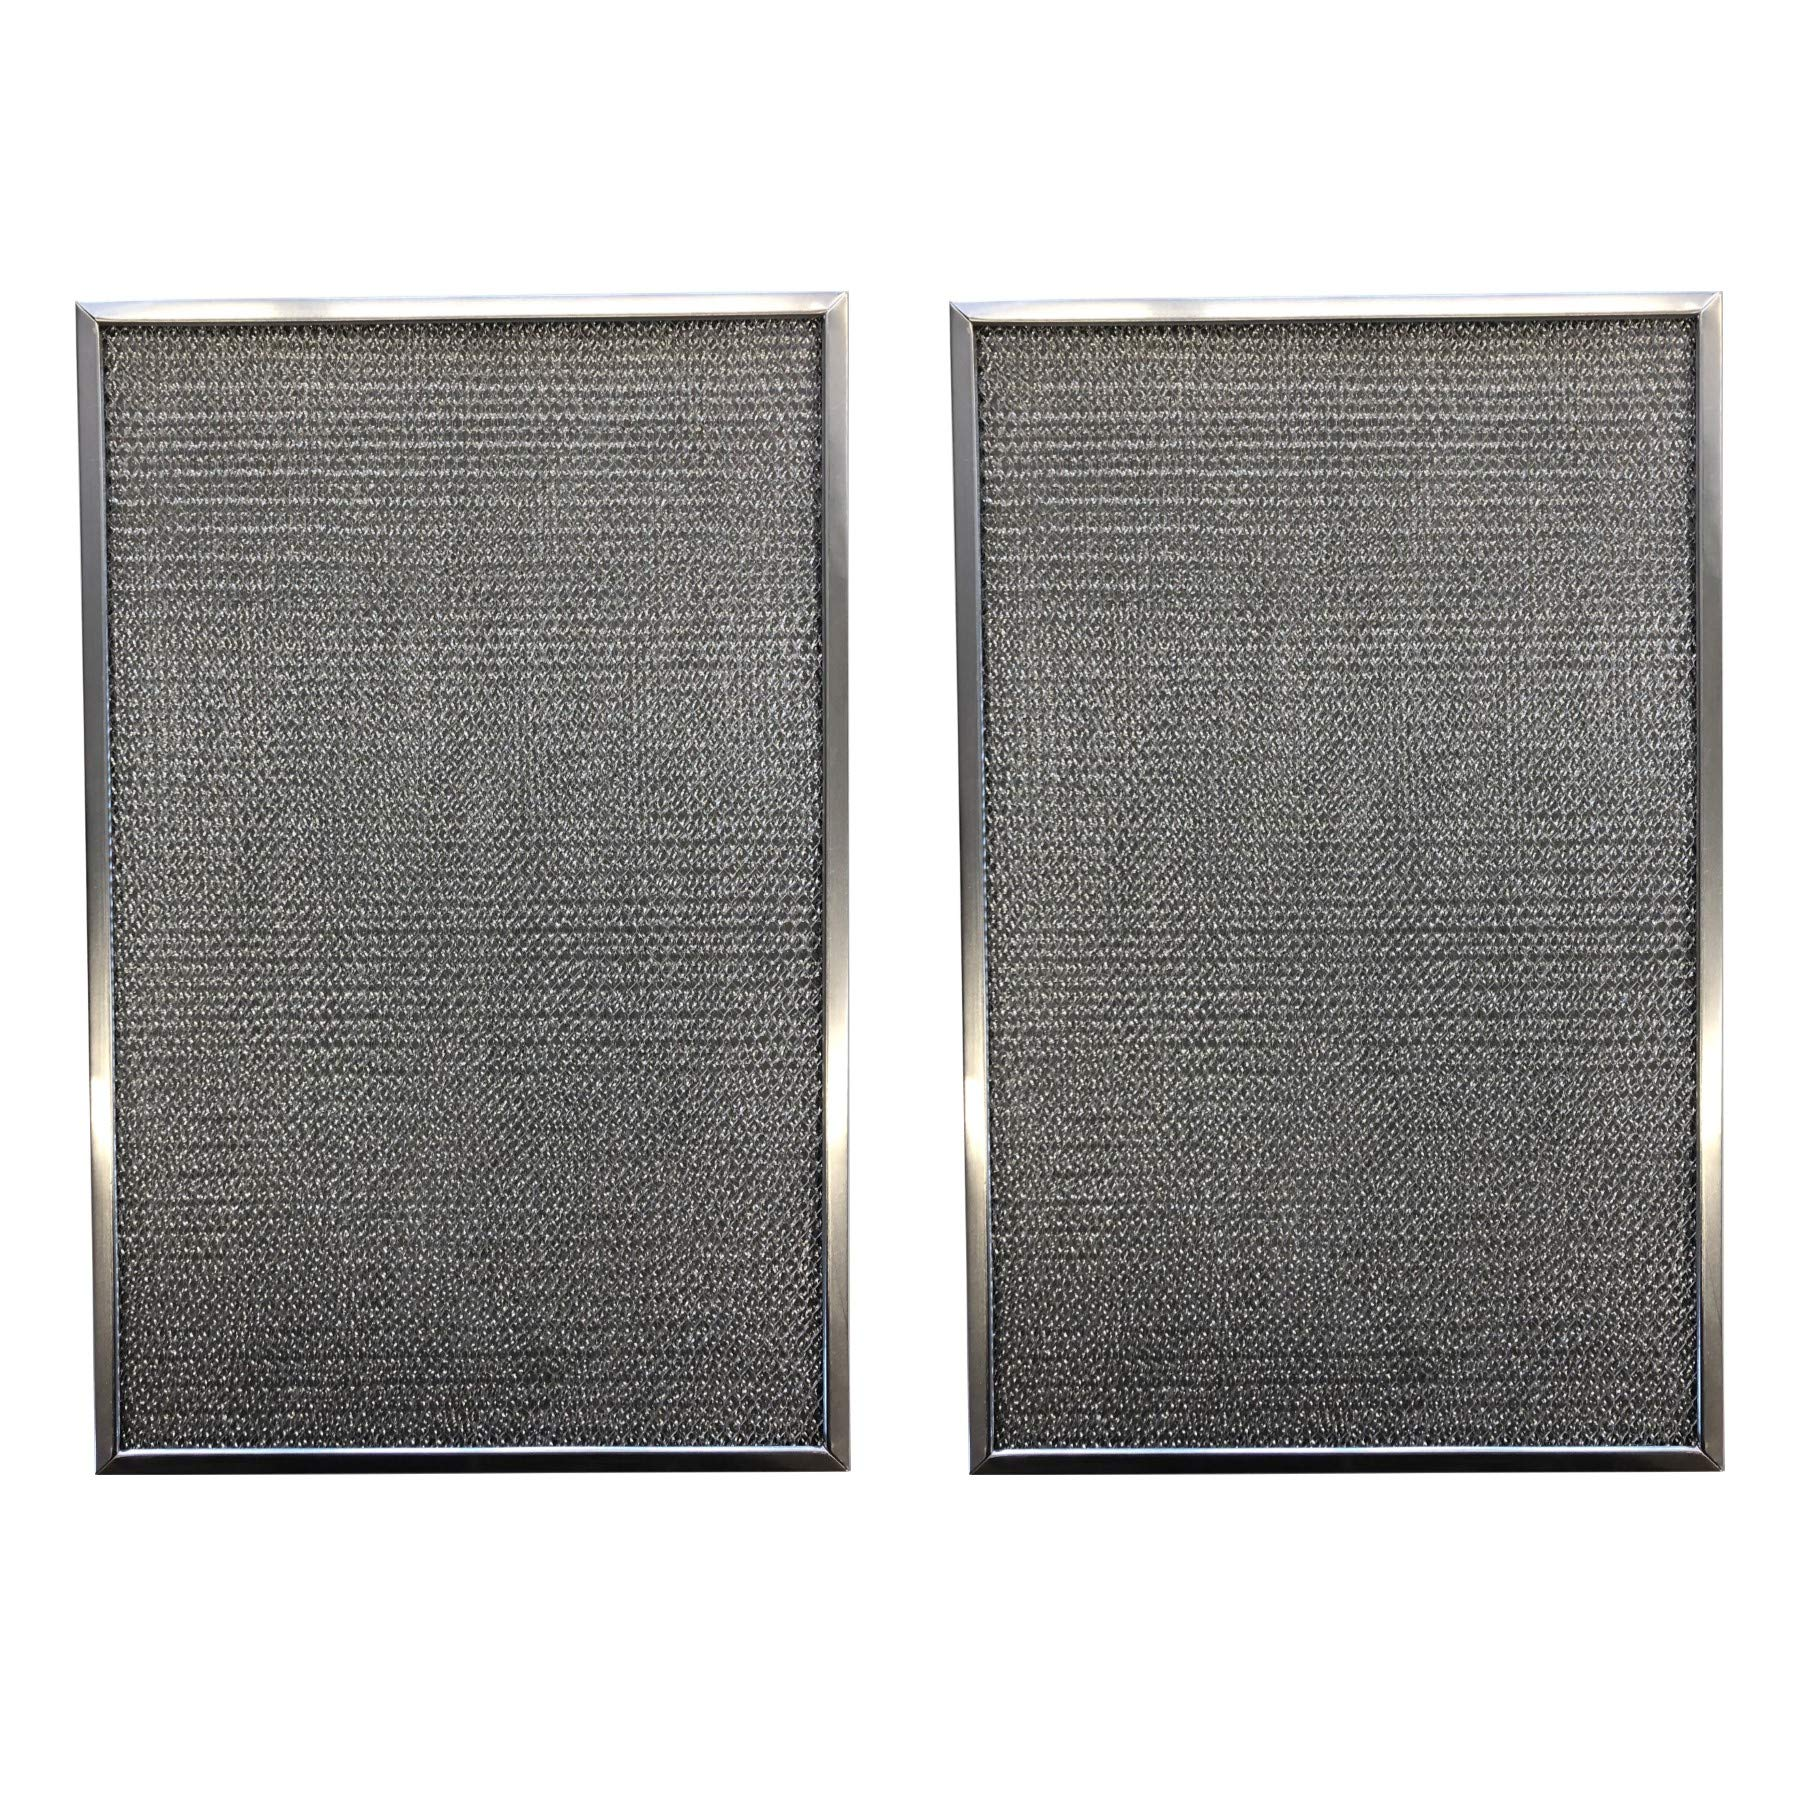 Replacement Aluminum Pre/Post Filter  9 7/8 x 15 7/8 X 3/8   Compatible with Honeywell Air Cleaner M